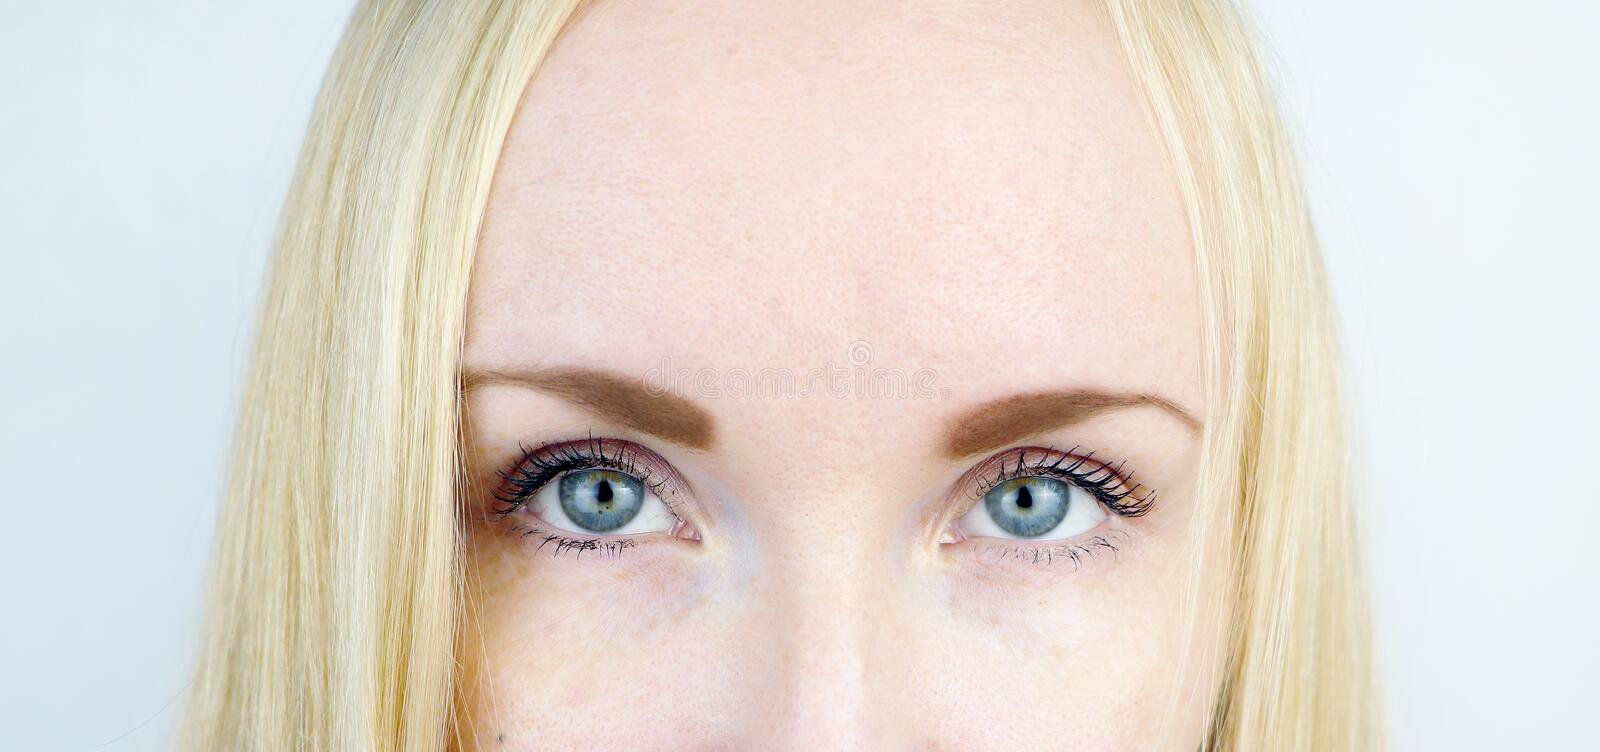 Green eyes of a beautiful girl. White background. Blonde freckles royalty free stock image